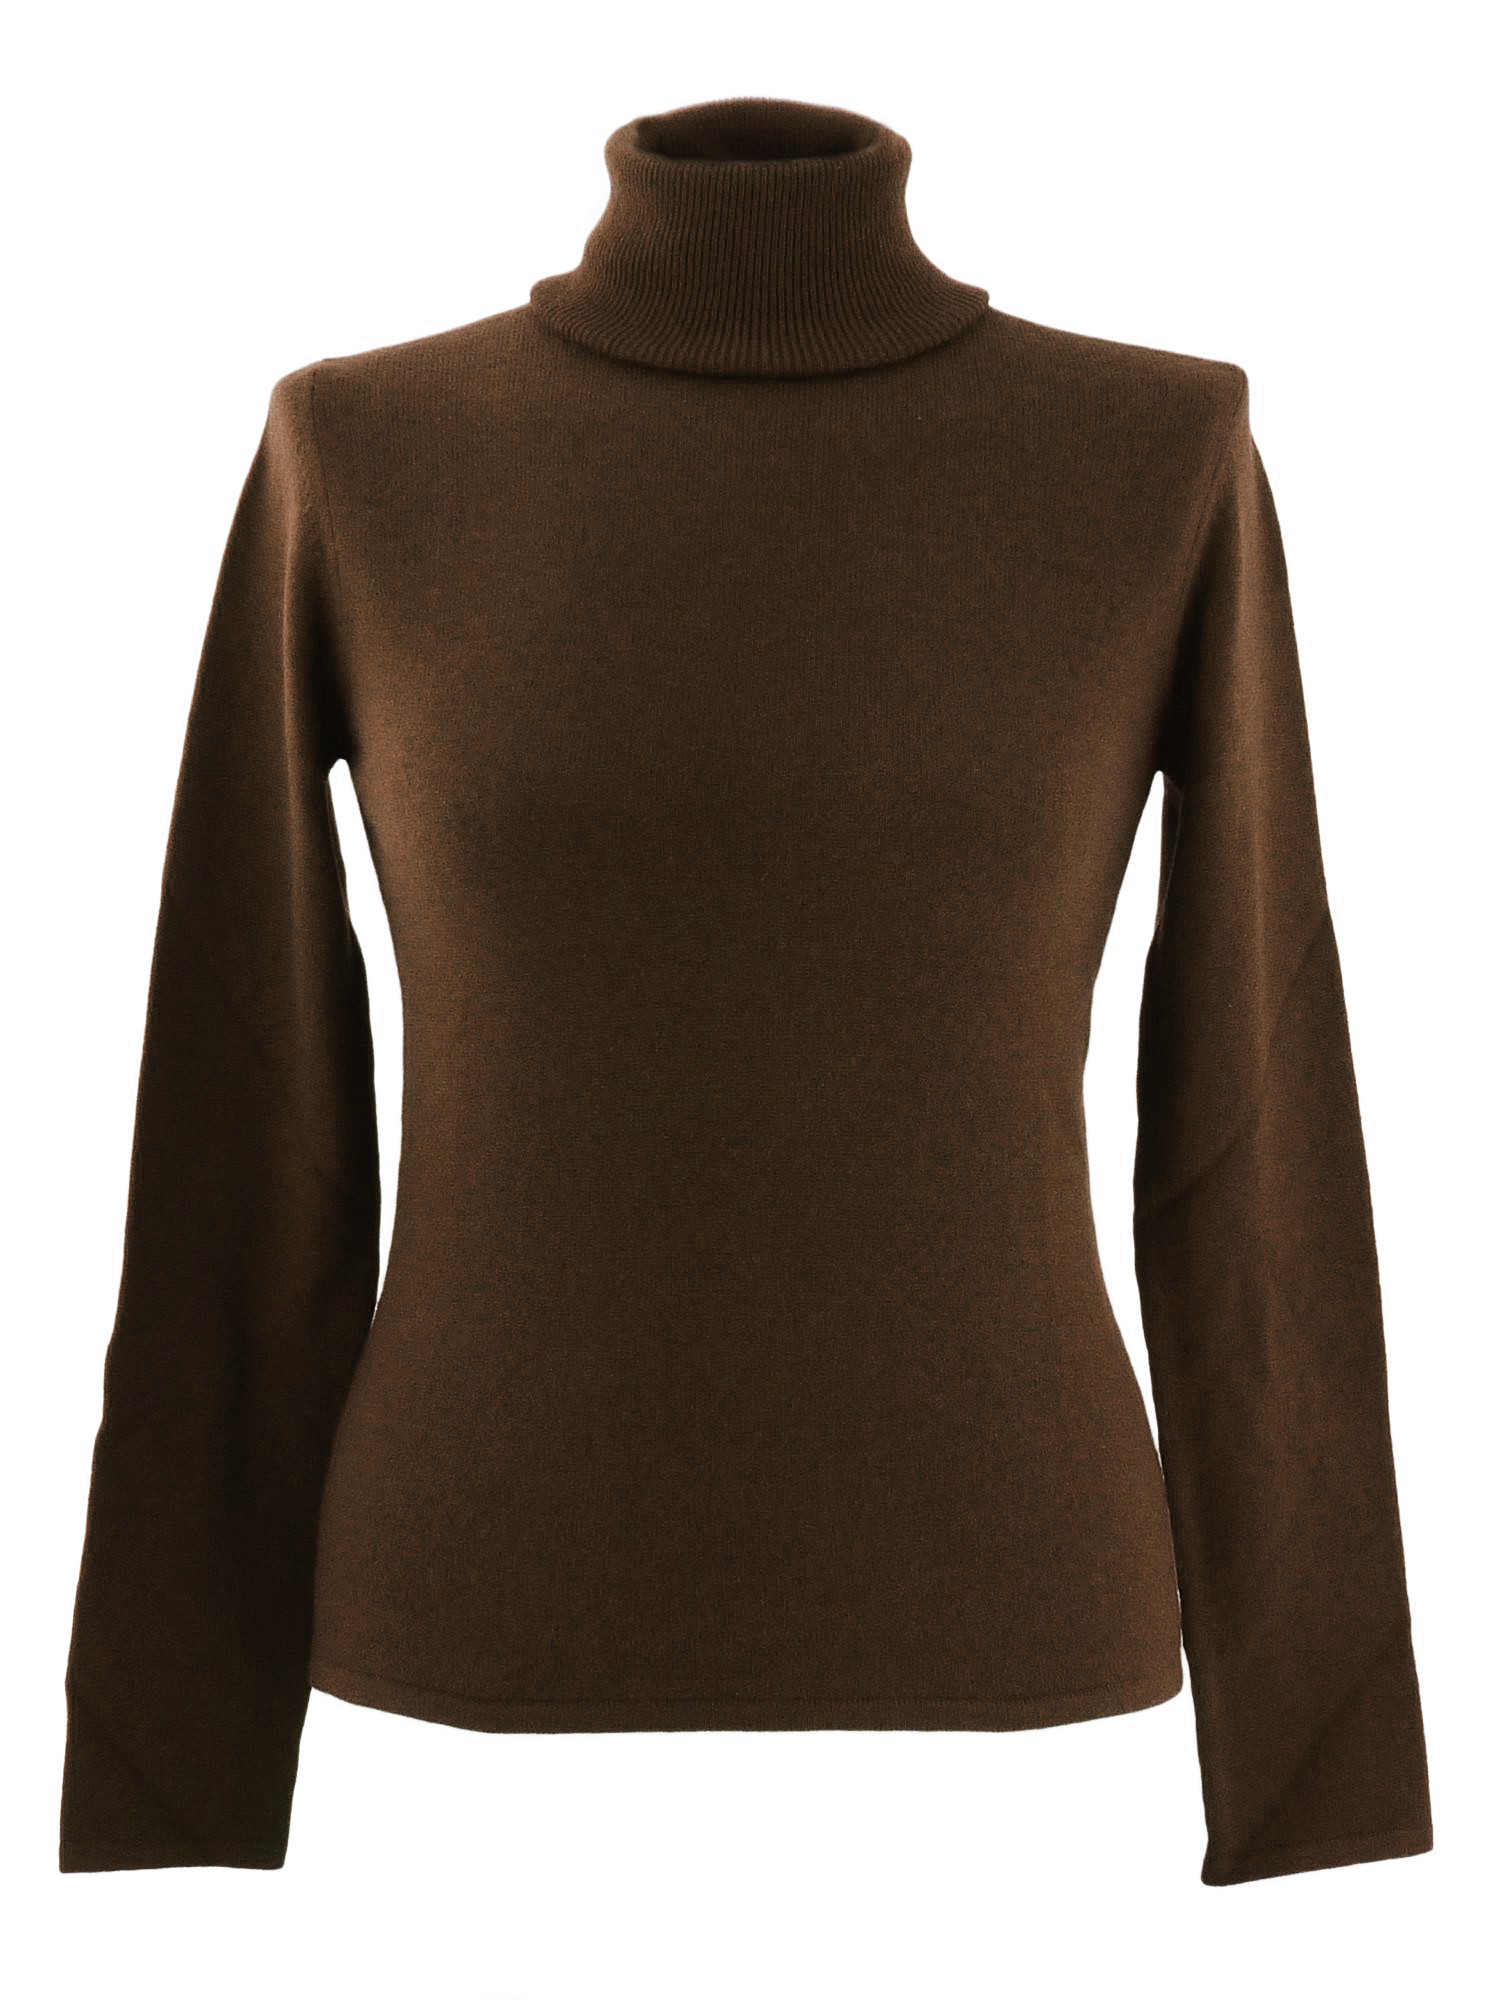 L - Ladies - Polo Neck - Dark Chocolate